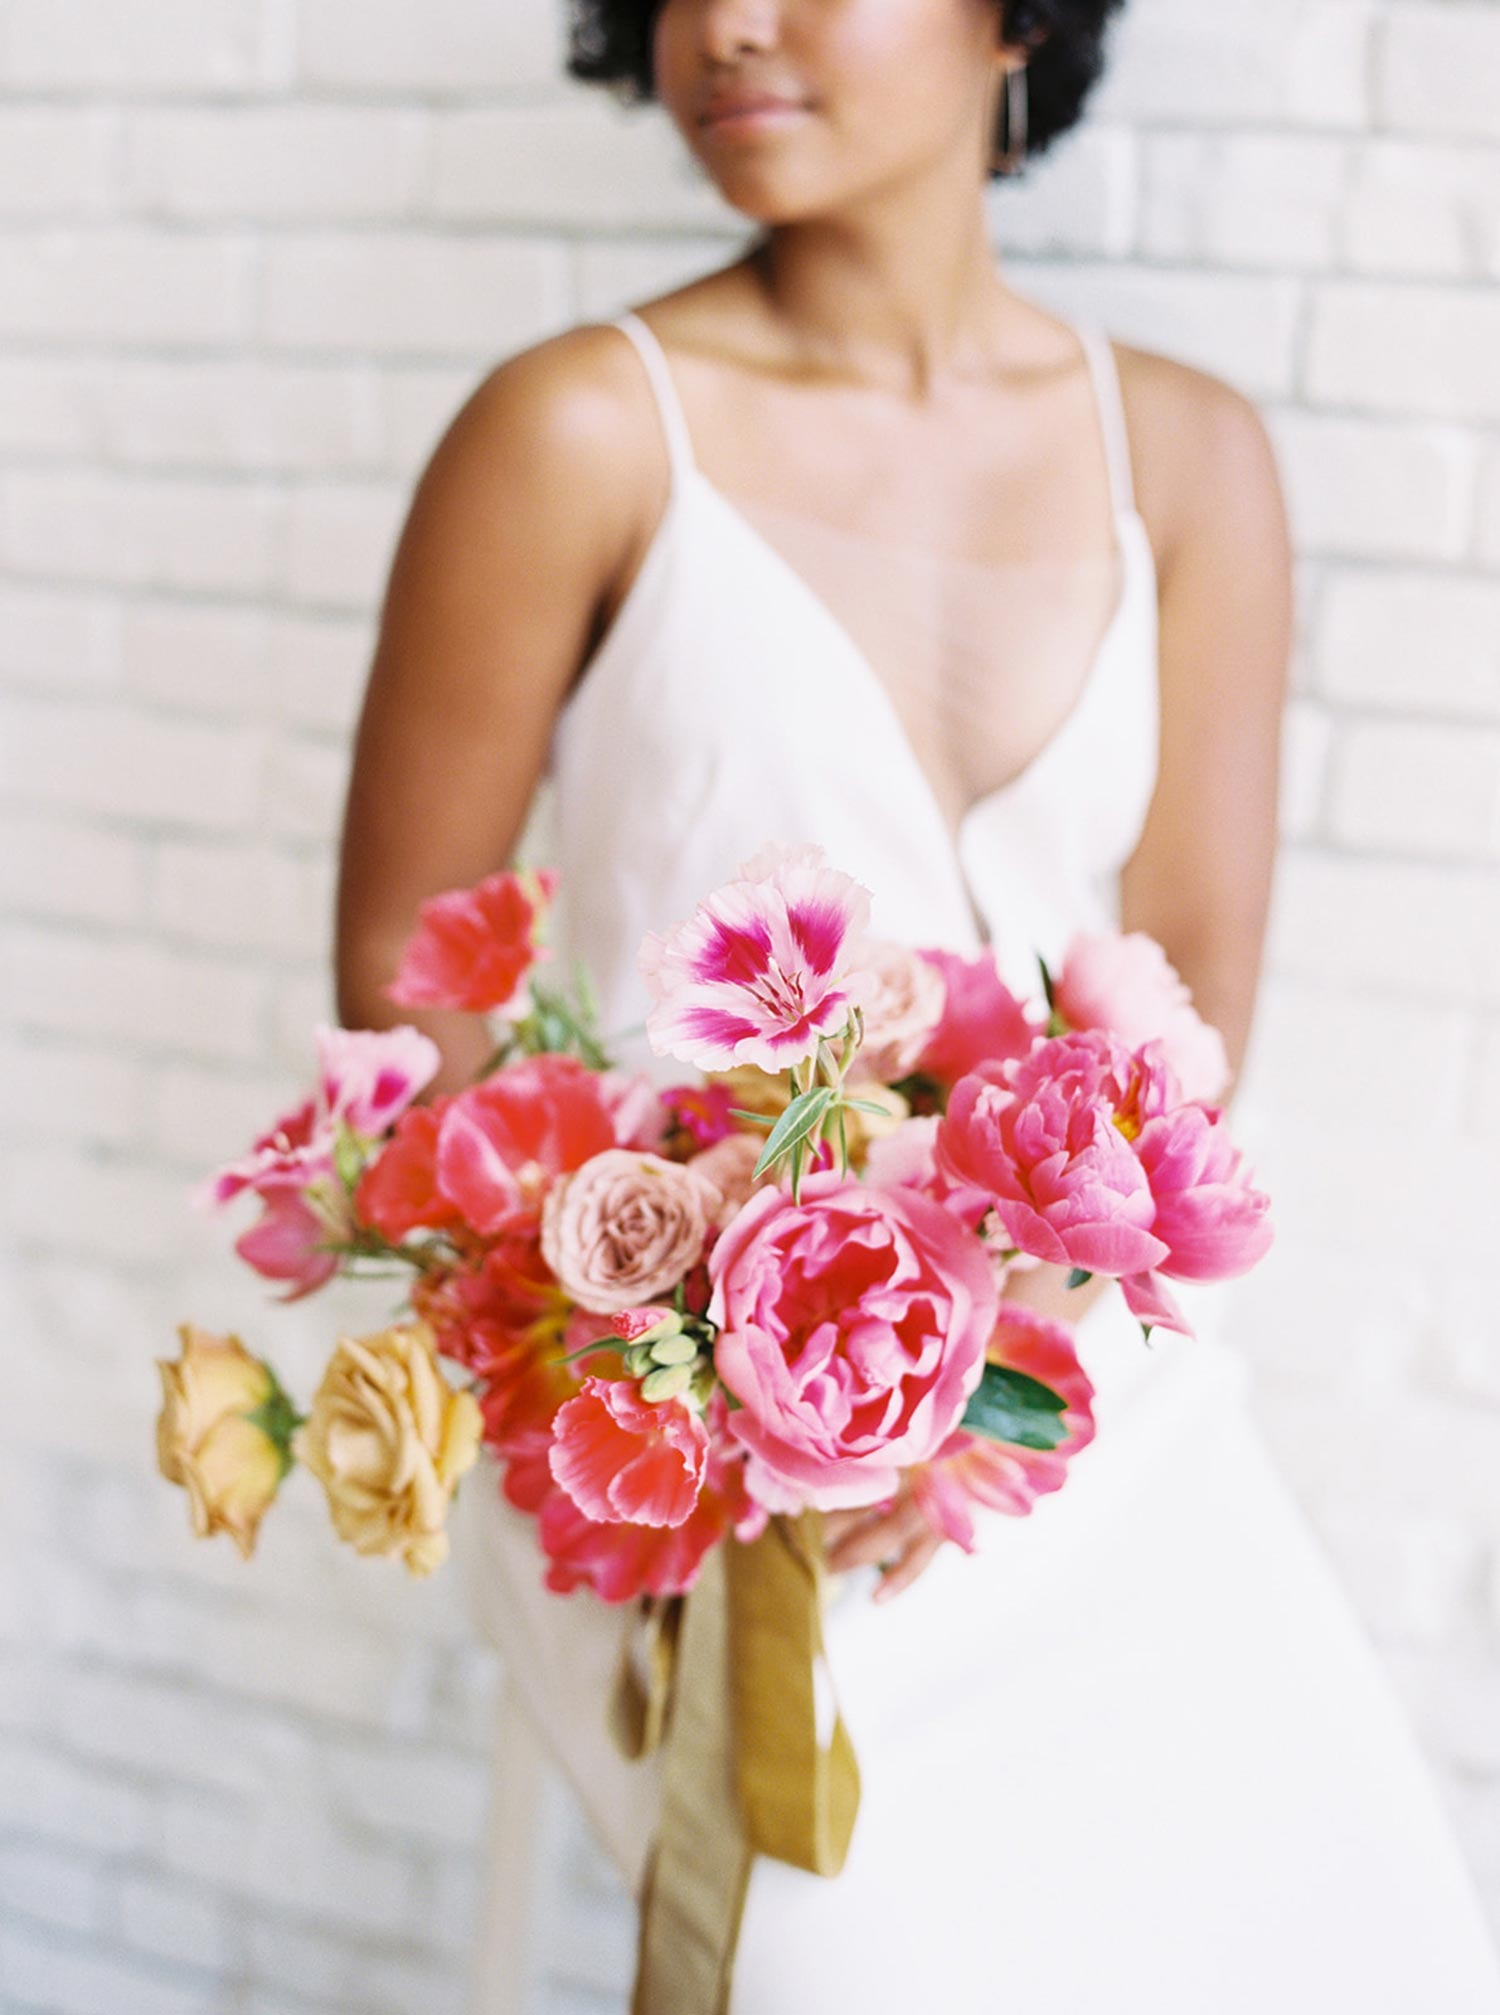 Bridal bouquet flowers by Color Theory Collective